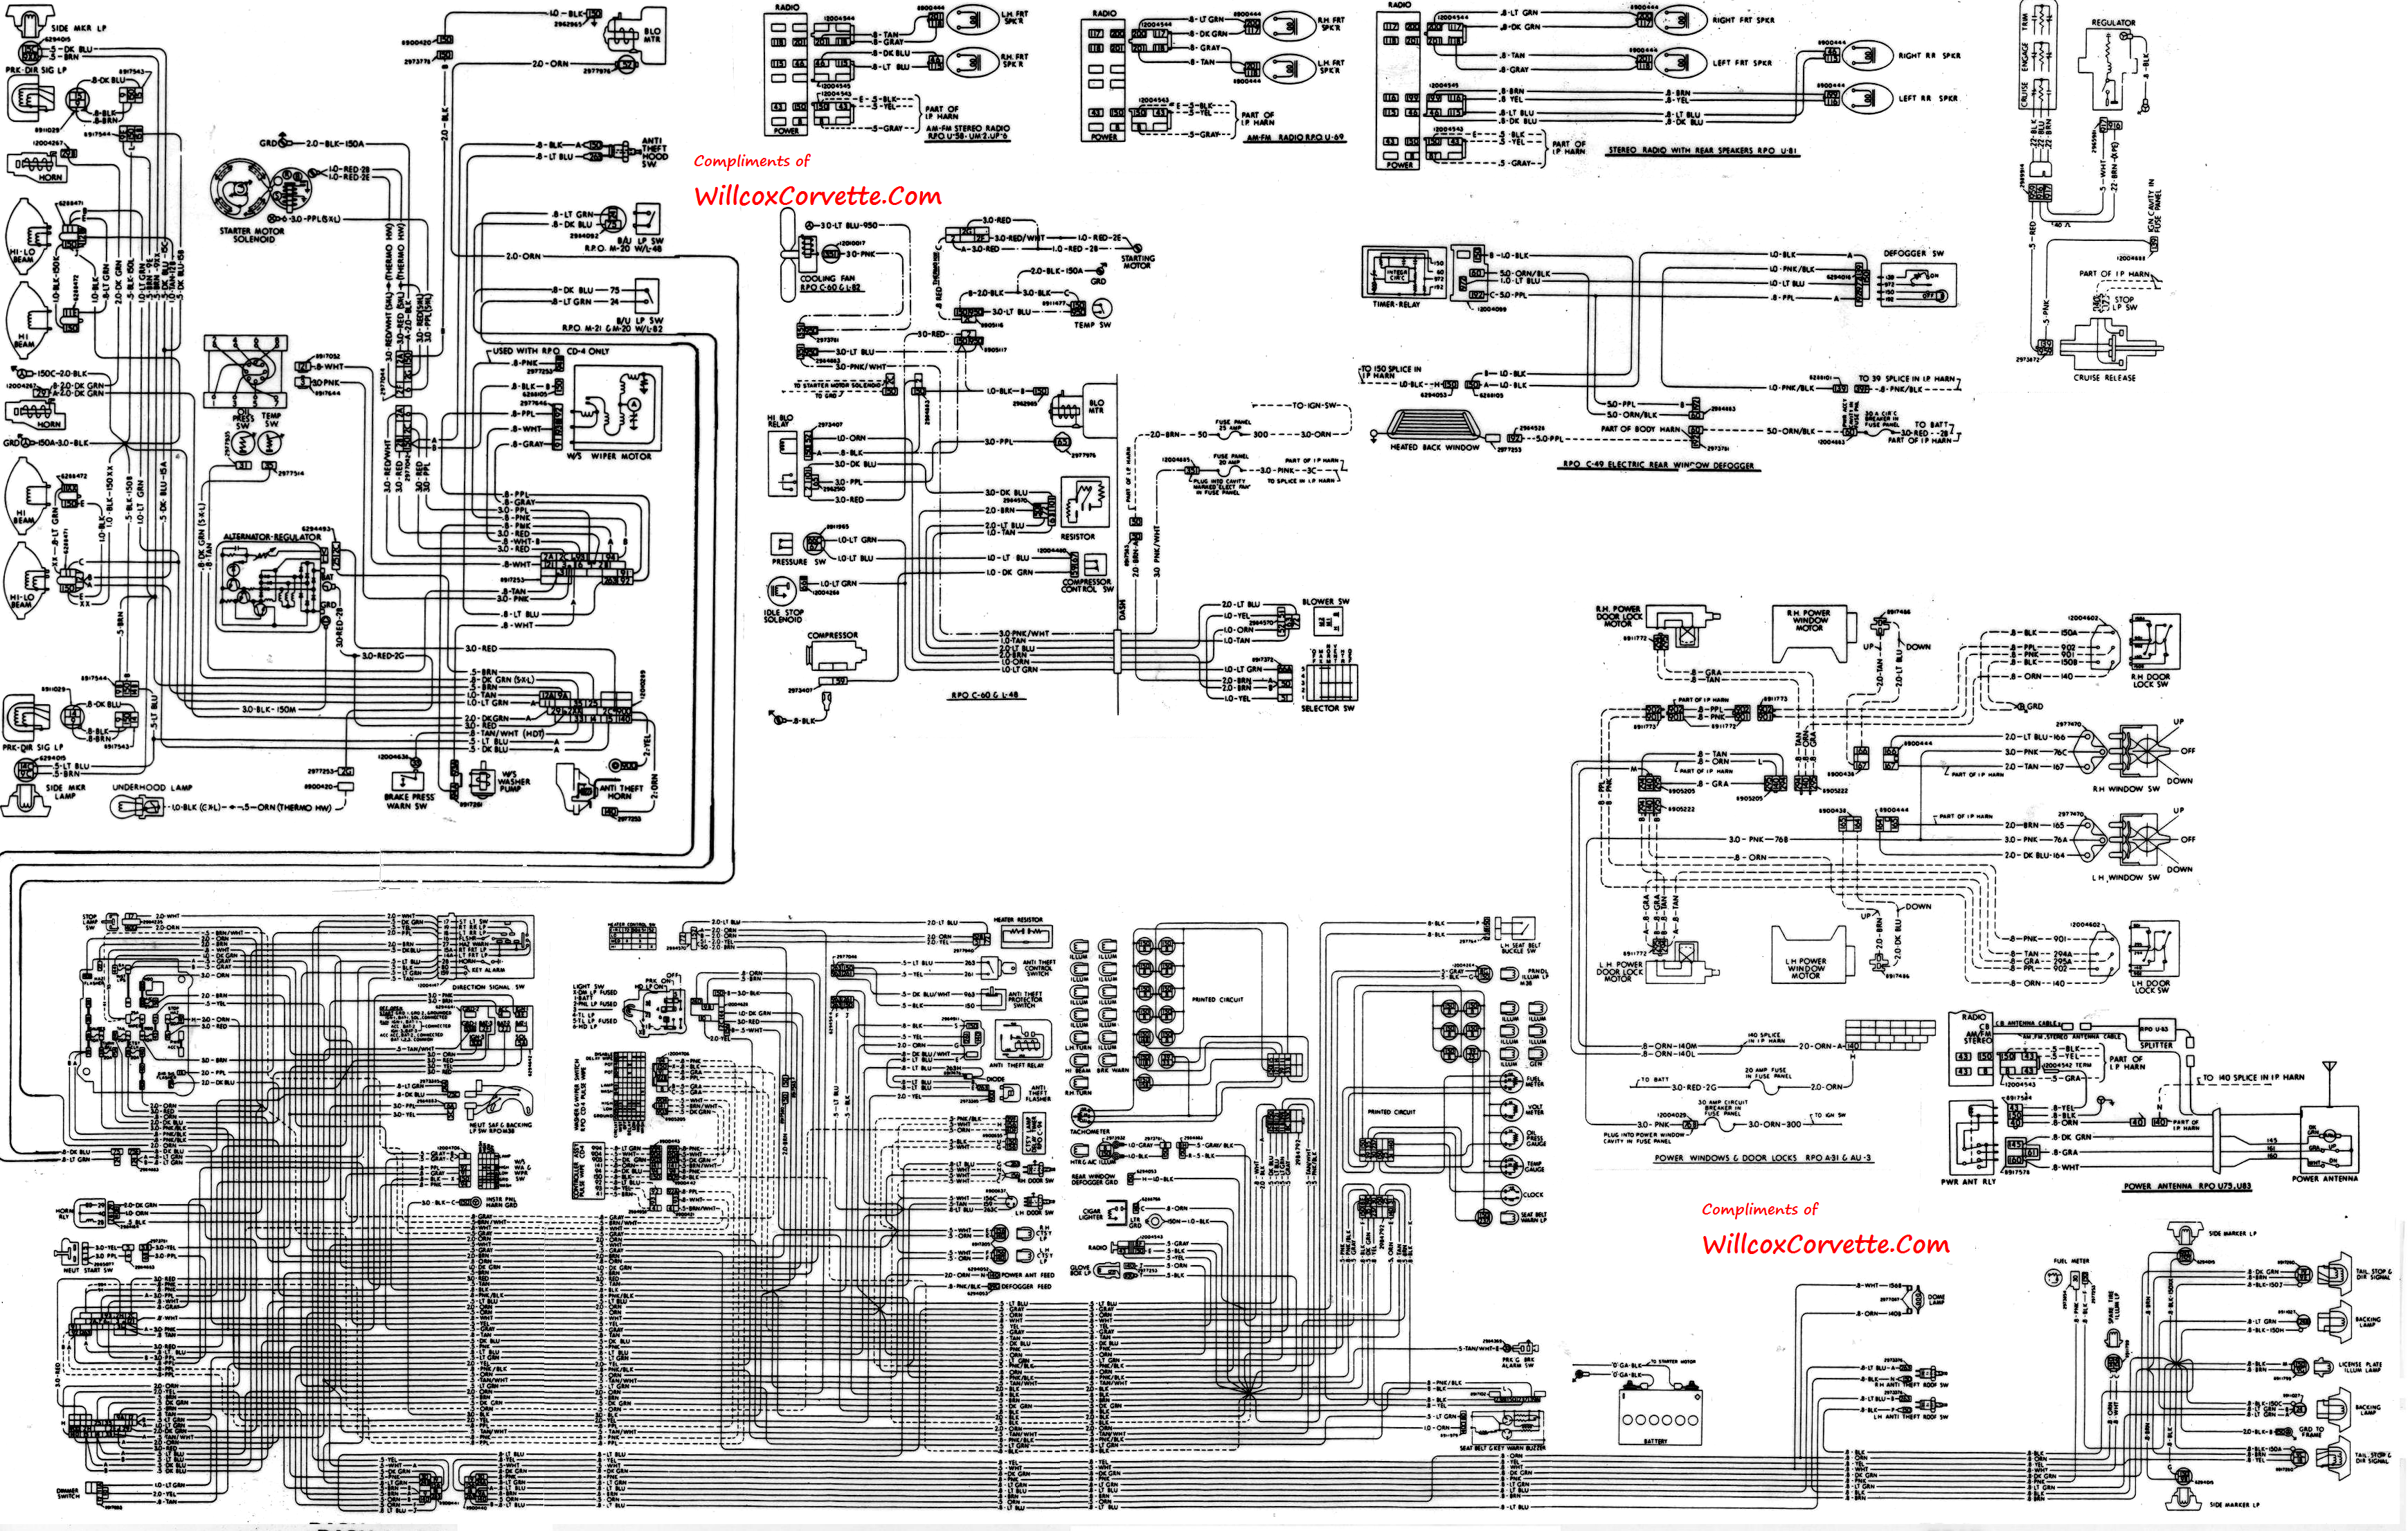 1979 wire diagram 1979 corvette tracer wiring diagram tracer schematic willcox willcox corvette wiring diagram at bayanpartner.co